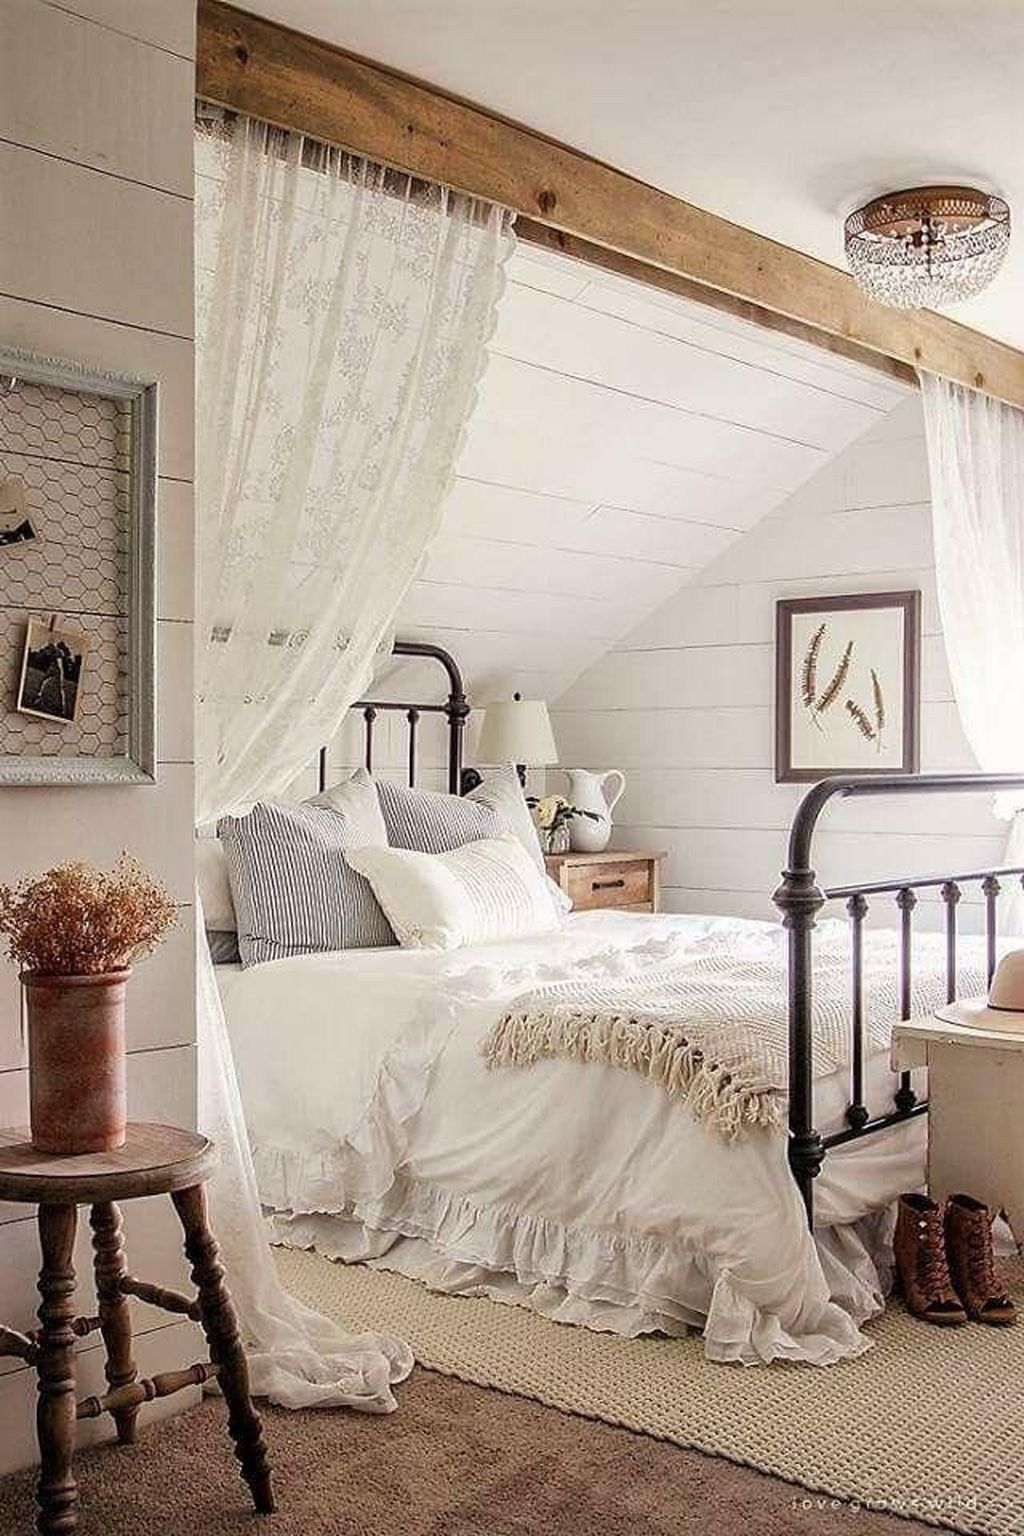 The Best Bedroom Decor Ideas With Farmhouse Style 06 Master